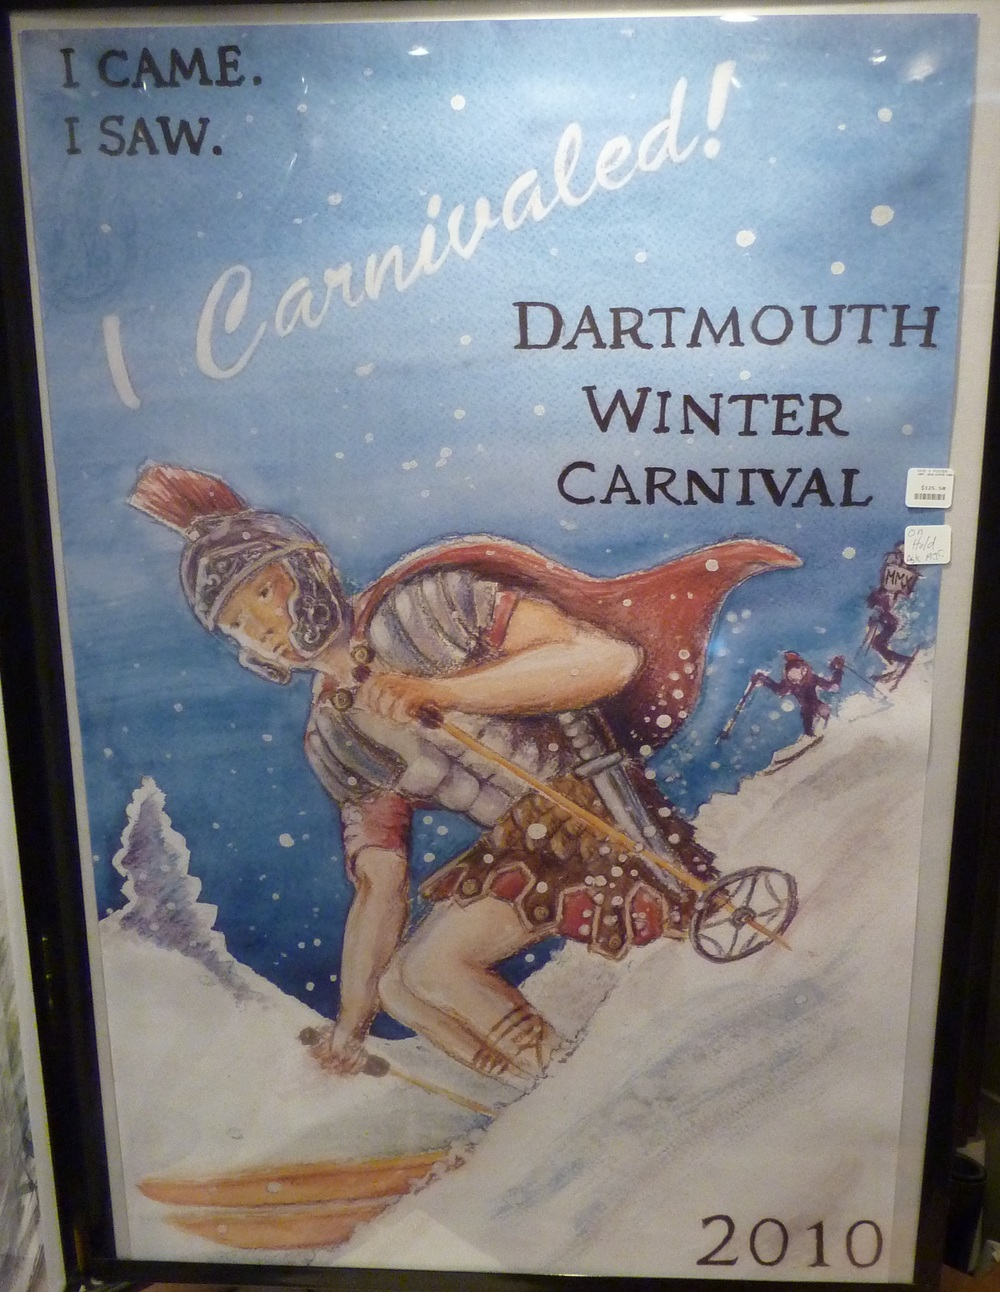 Dartmouth Winter Carnival 2010